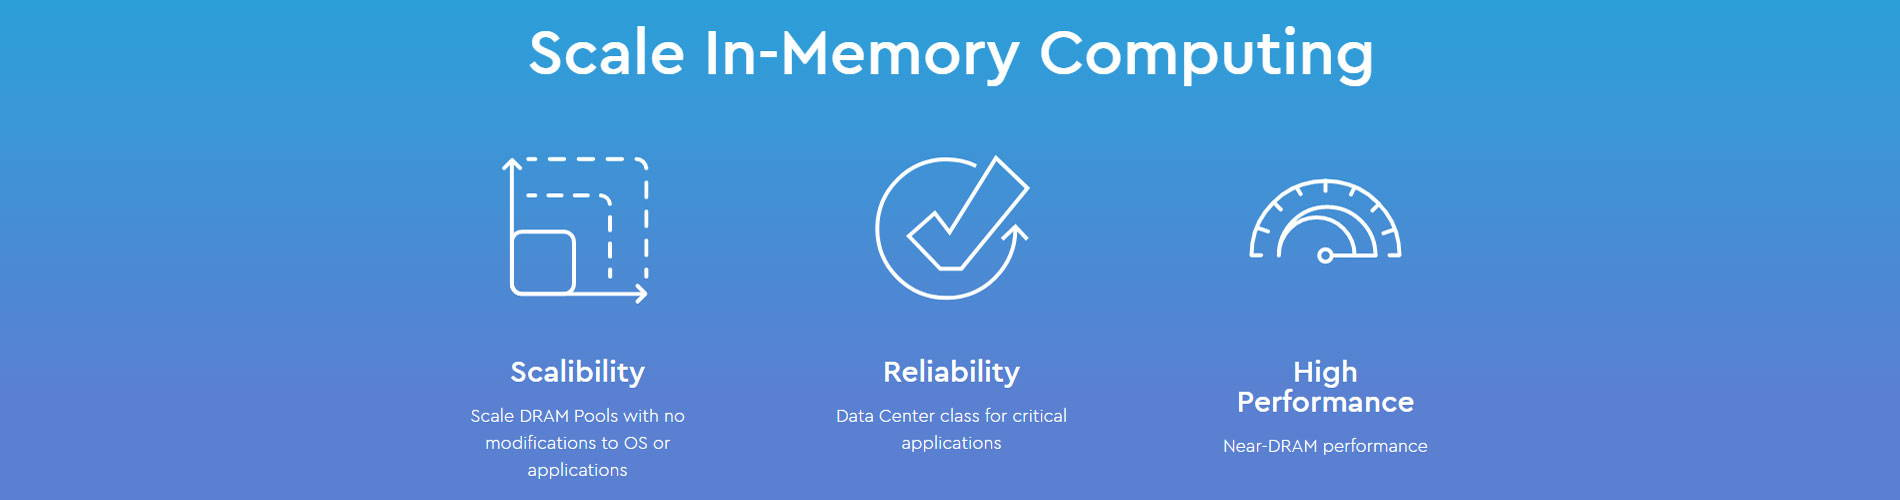 Scale In-Memory Computing